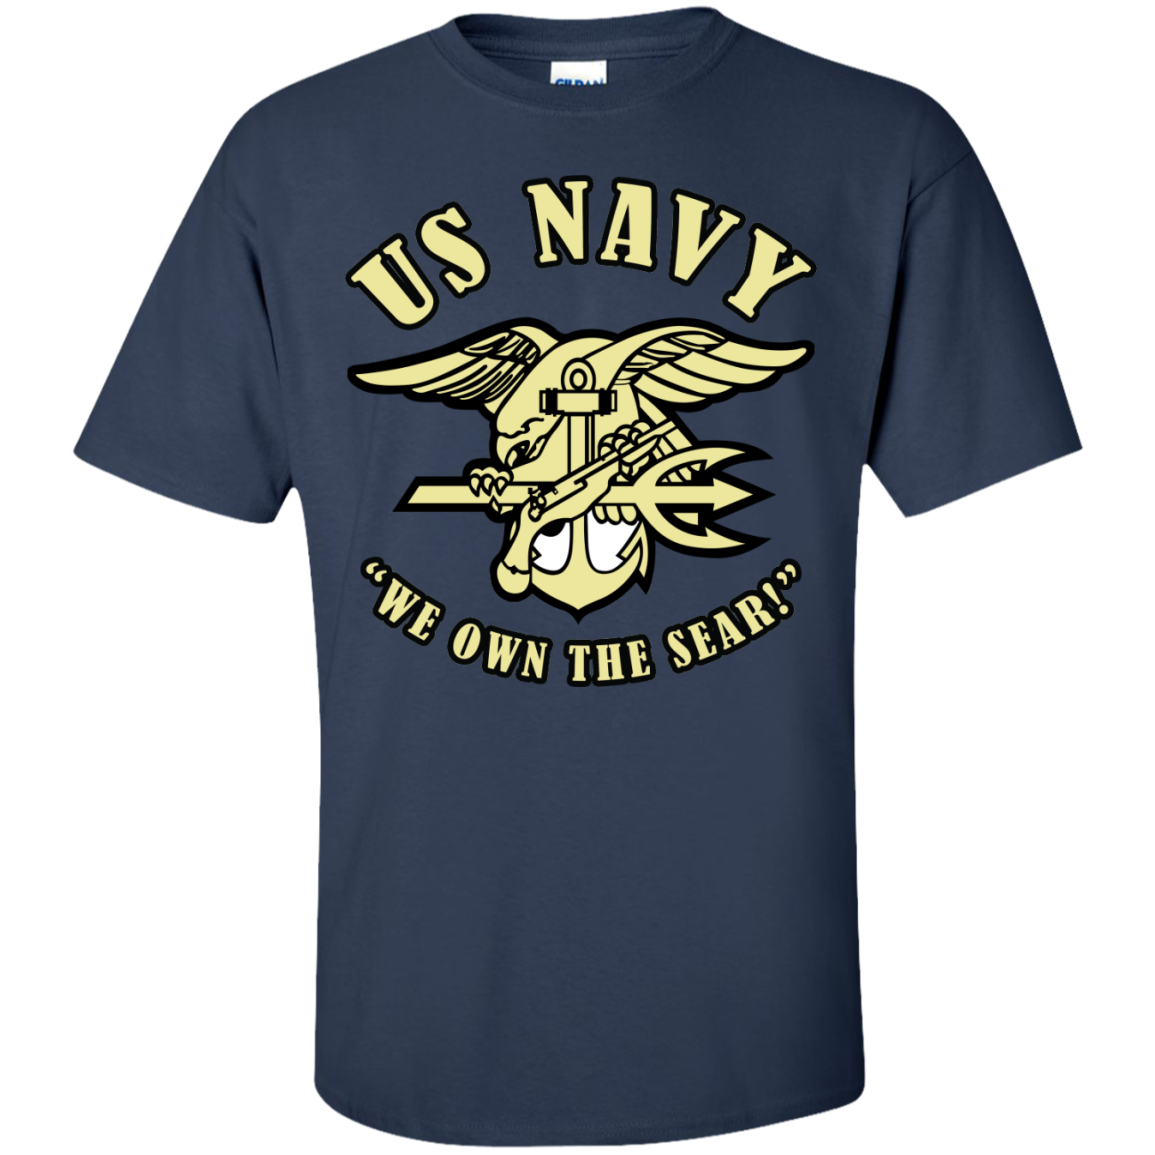 "US NAVY ""We Own The Sear!"""